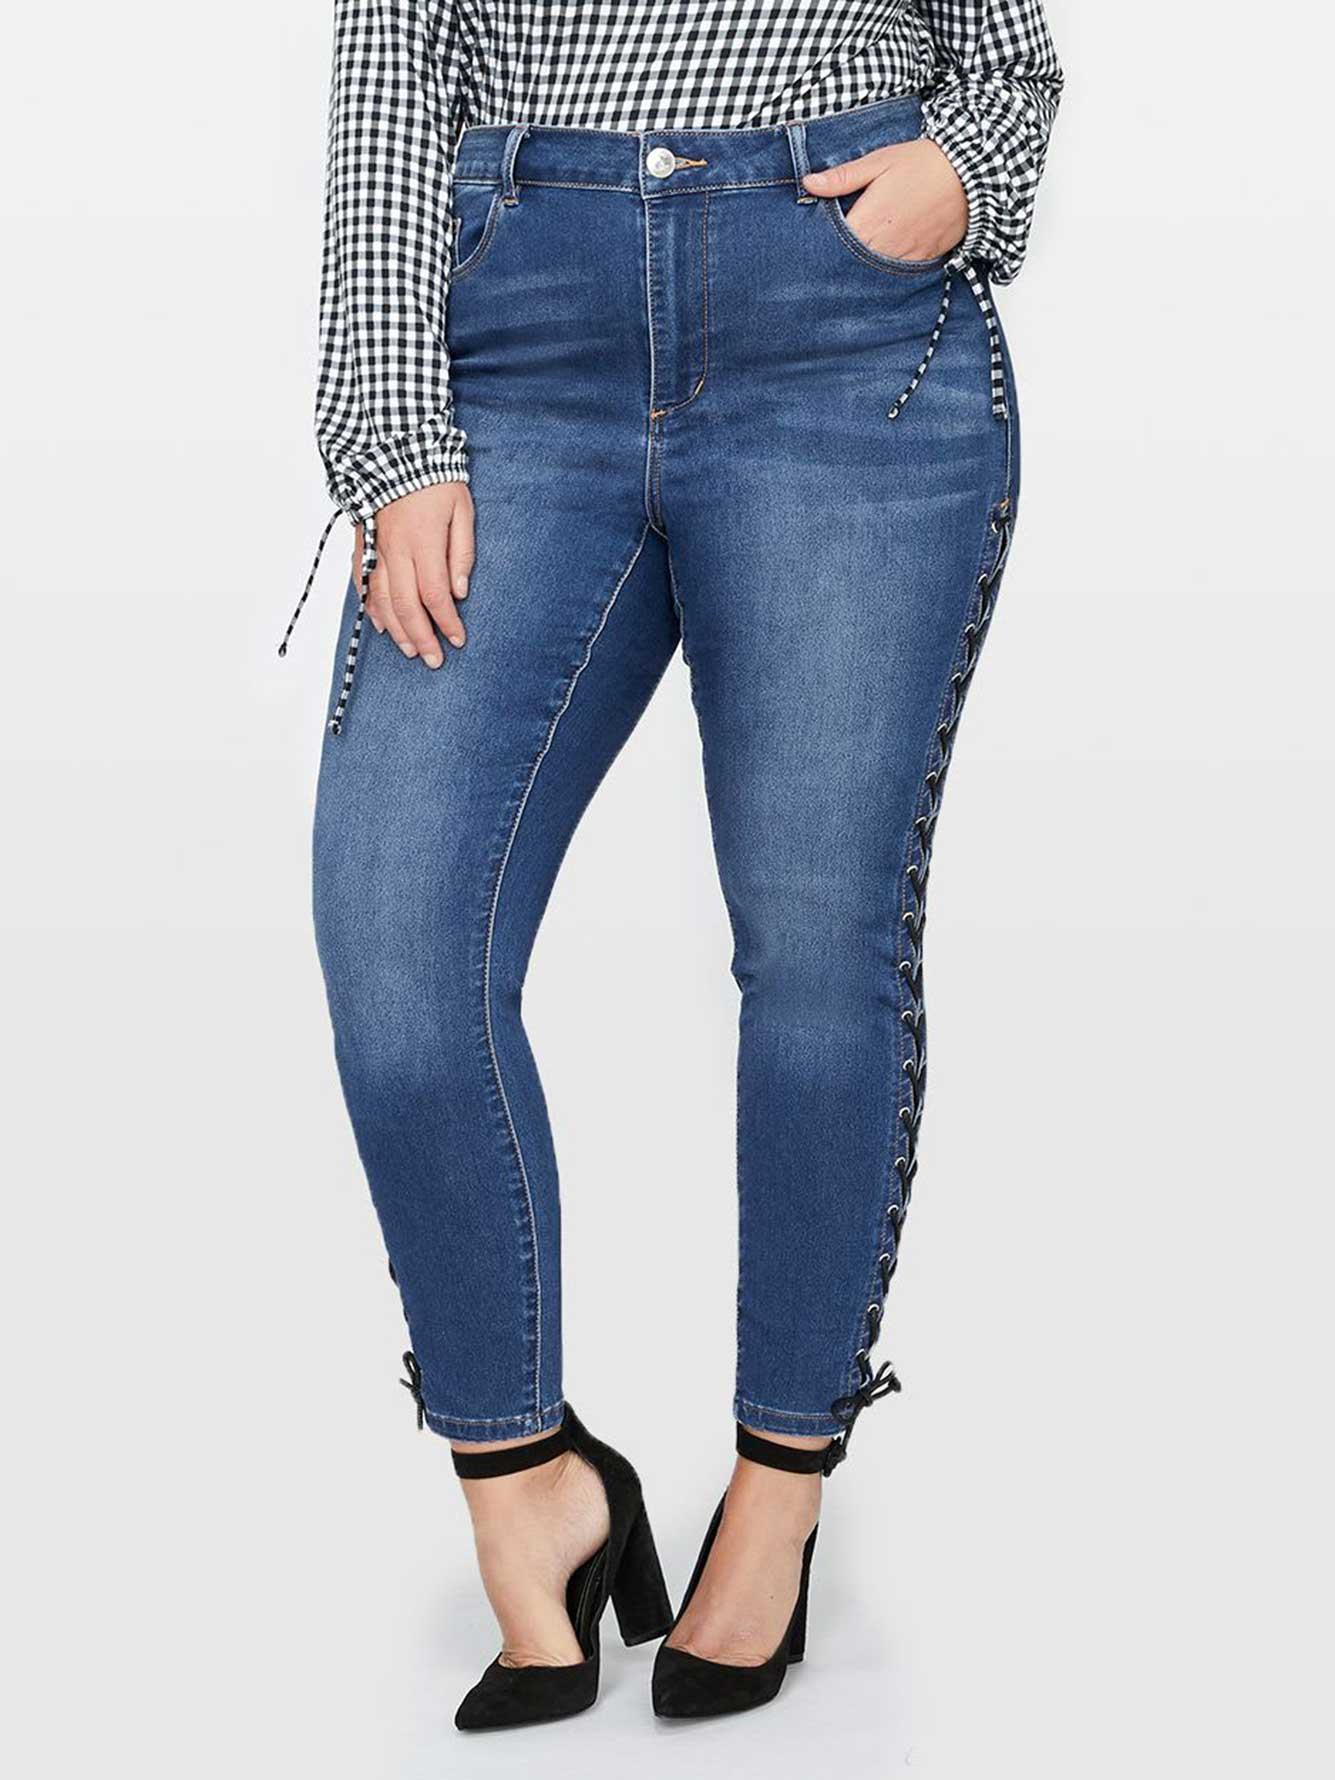 L&L Skinny Jean with Lace-Up Side